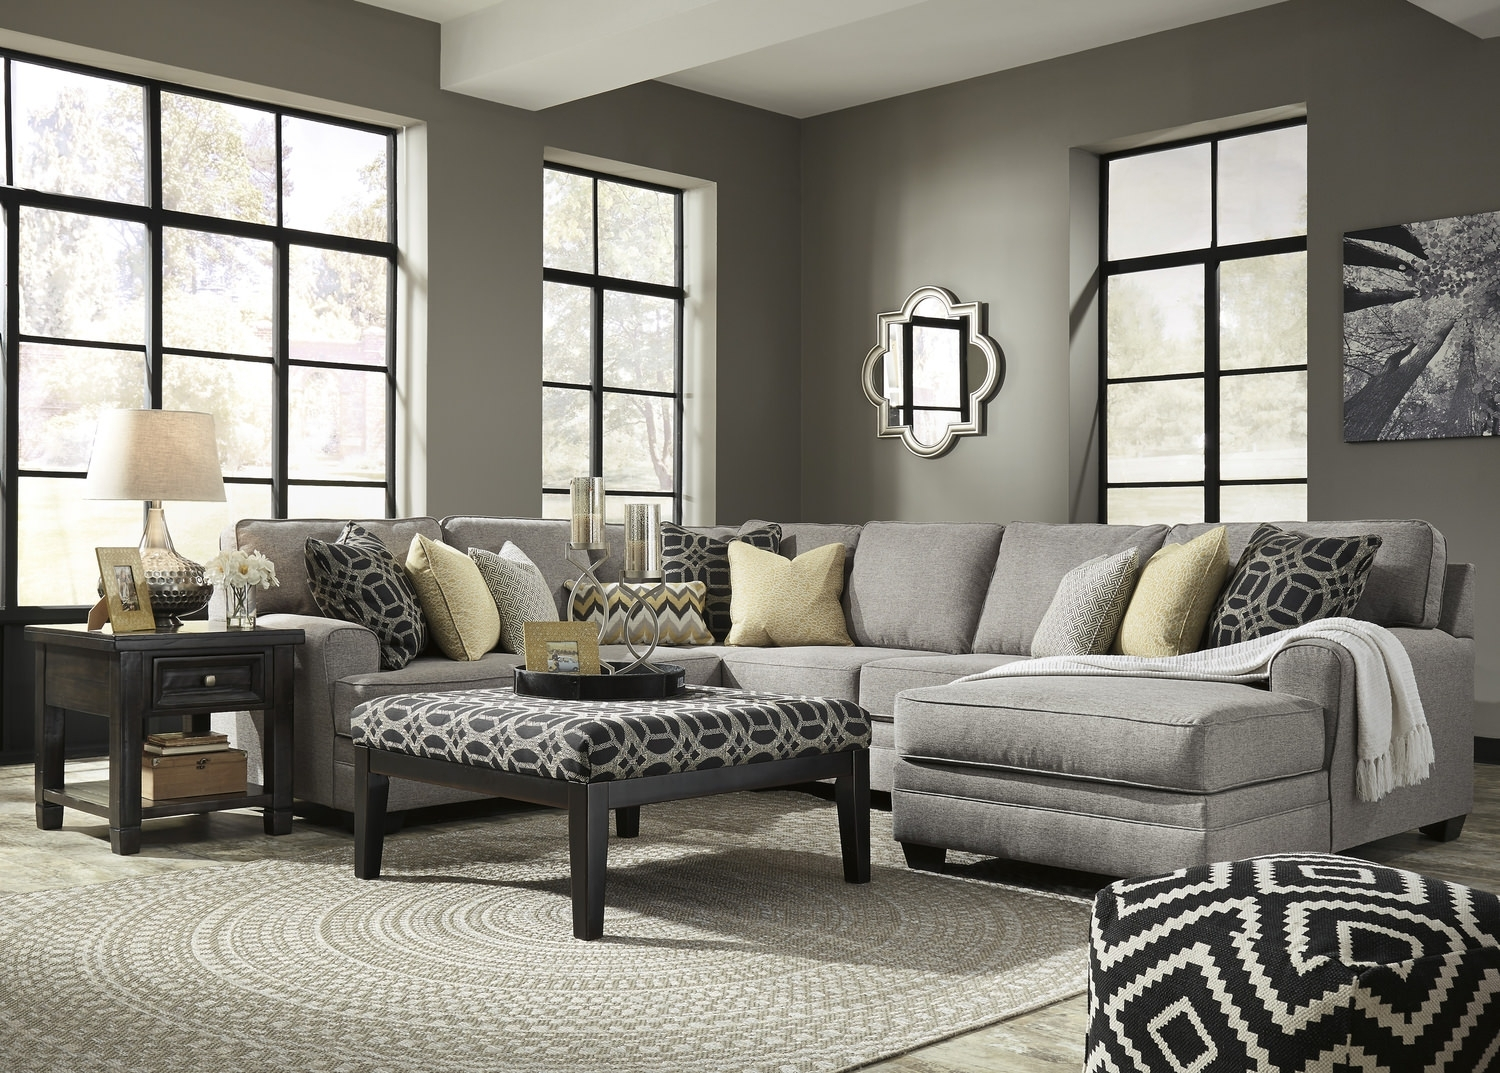 City 4 Piece Sectional | Hom Furniture Throughout St Cloud Mn Sectional Sofas (View 3 of 10)